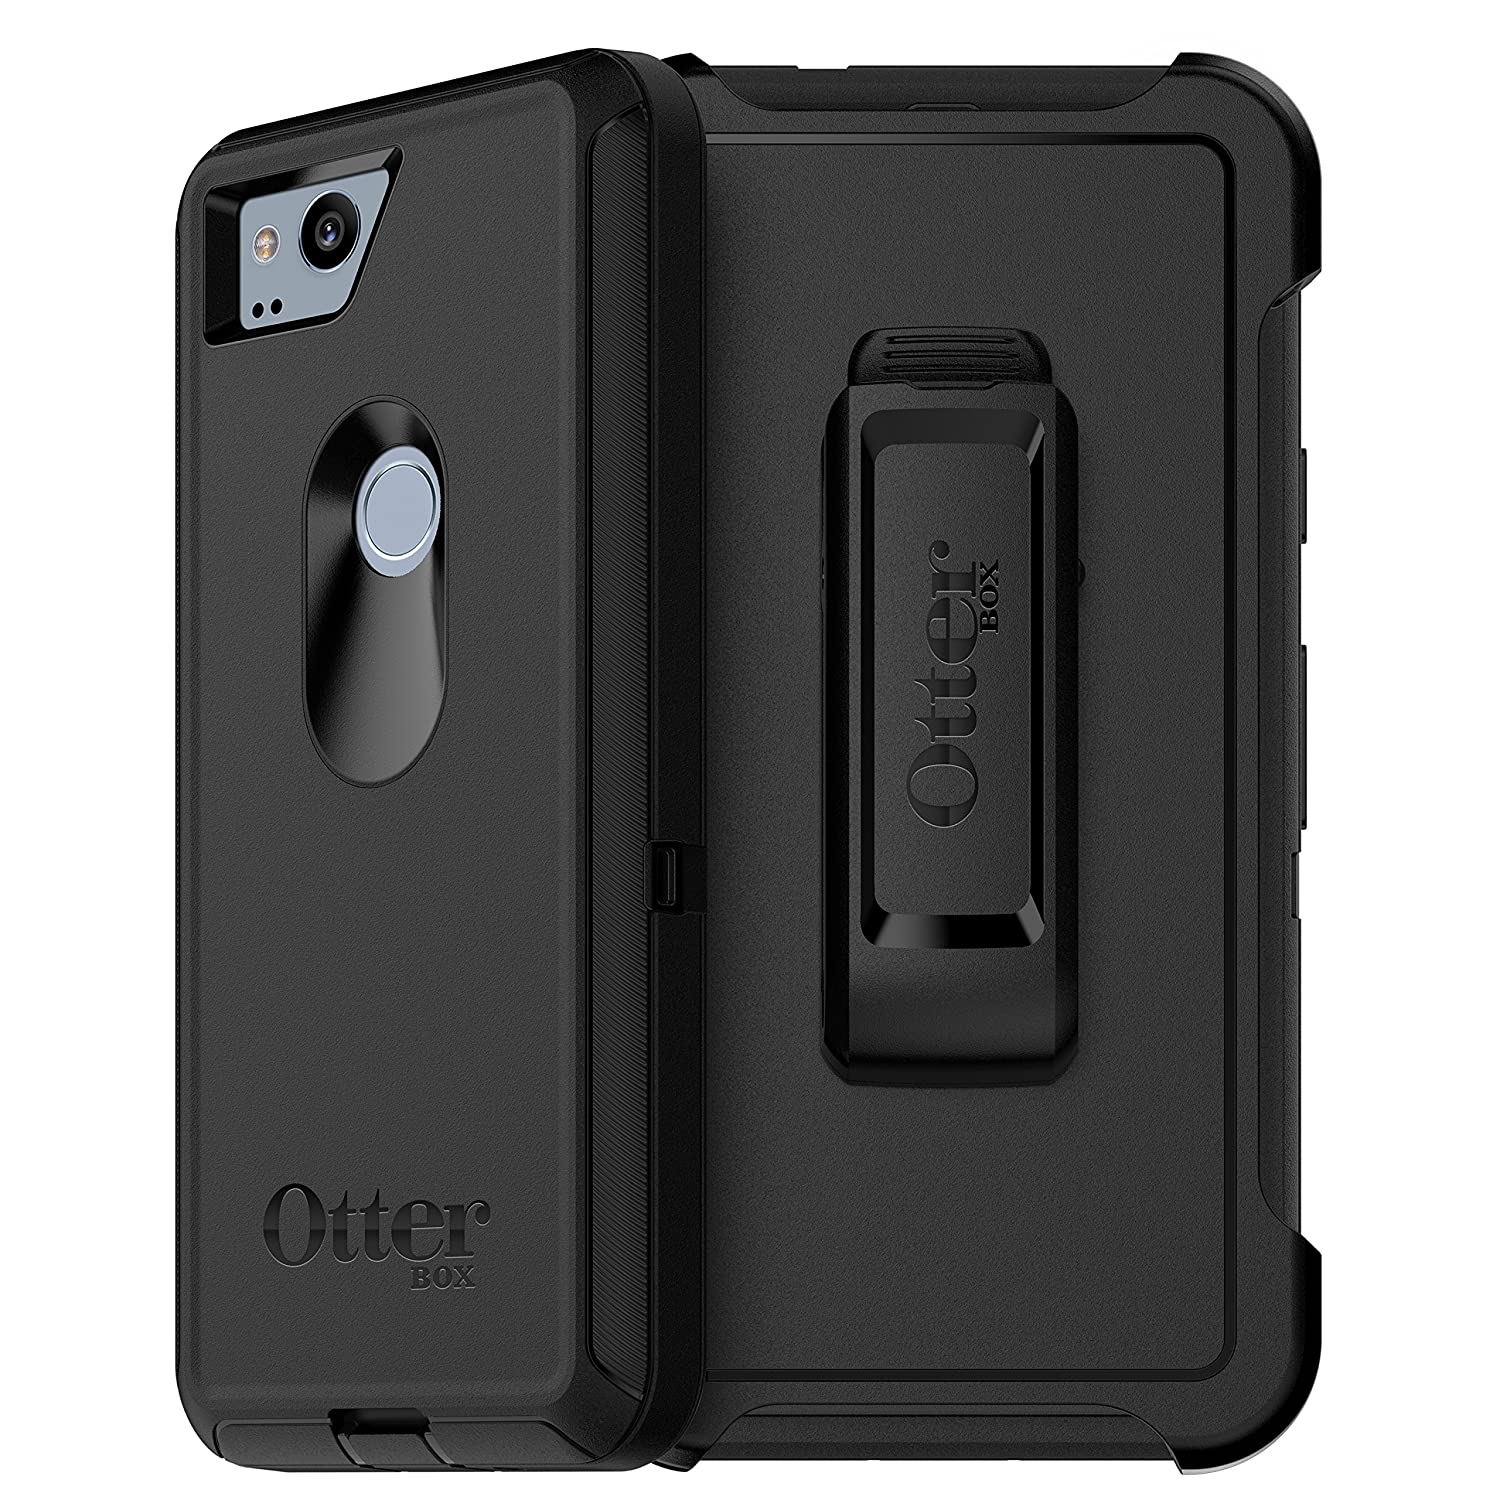 newest a502c e32c6 OtterBox DEFENDER SERIES Case for Google Pixel 2 - Retail Packaging - BLACK